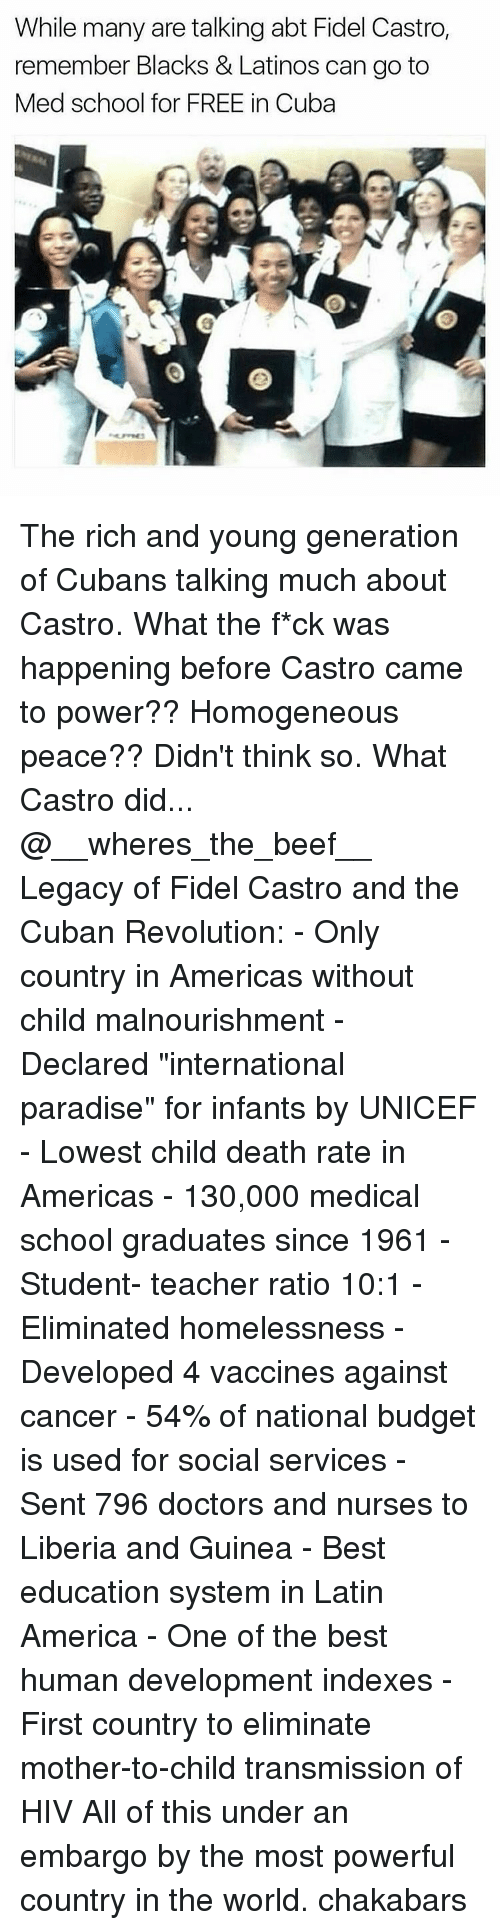 "Beef, Beef, and Homeless: While many are talking abt Fidel Castro,  remember Blacks & Latinos can go to  Med school for FREE in Cuba The rich and young generation of Cubans talking much about Castro. What the f*ck was happening before Castro came to power?? Homogeneous peace?? Didn't think so. What Castro did... @__wheres_the_beef__ Legacy of Fidel Castro and the Cuban Revolution: - Only country in Americas without child malnourishment - Declared ""international paradise"" for infants by UNICEF - Lowest child death rate in Americas - 130,000 medical school graduates since 1961 - Student- teacher ratio 10:1 - Eliminated homelessness - Developed 4 vaccines against cancer - 54% of national budget is used for social services - Sent 796 doctors and nurses to Liberia and Guinea - Best education system in Latin America - One of the best human development indexes - First country to eliminate mother-to-child transmission of HIV All of this under an embargo by the most powerful country in the world. chakabars"